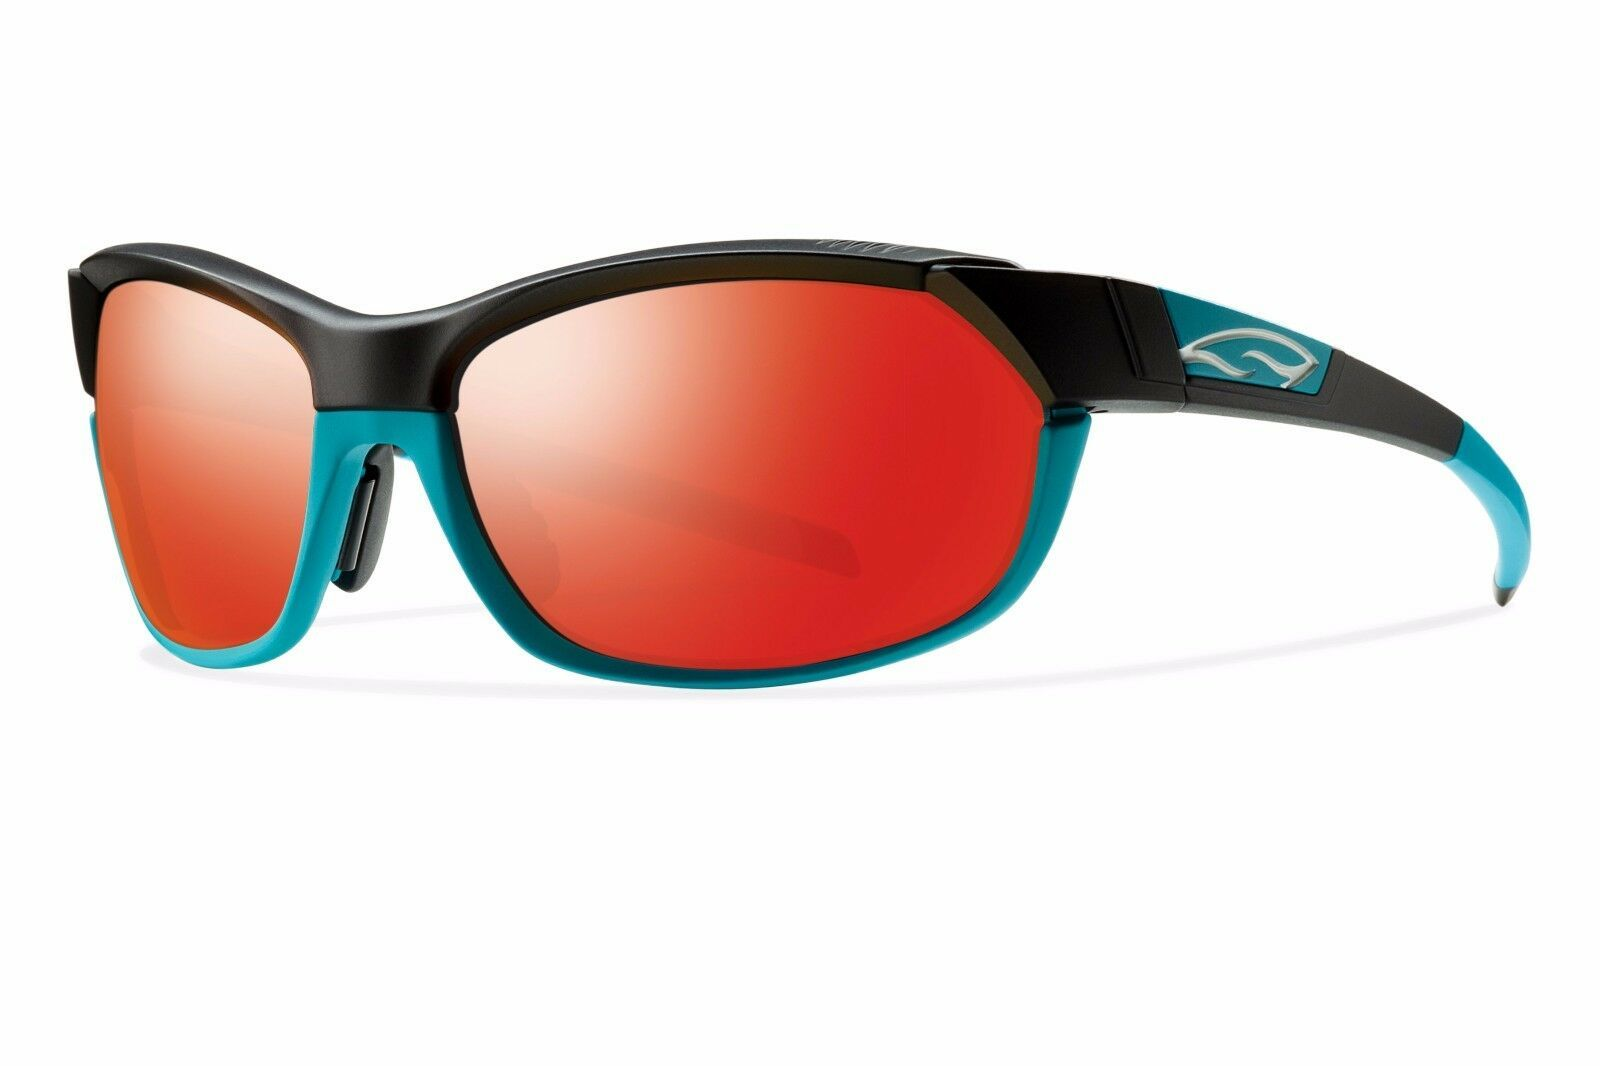 Primary image for SMITH OPTICS PIVLOCK OVERDRIVE SUNGLASSES BLACK TURQUOISE FRAME/ RED SOL X